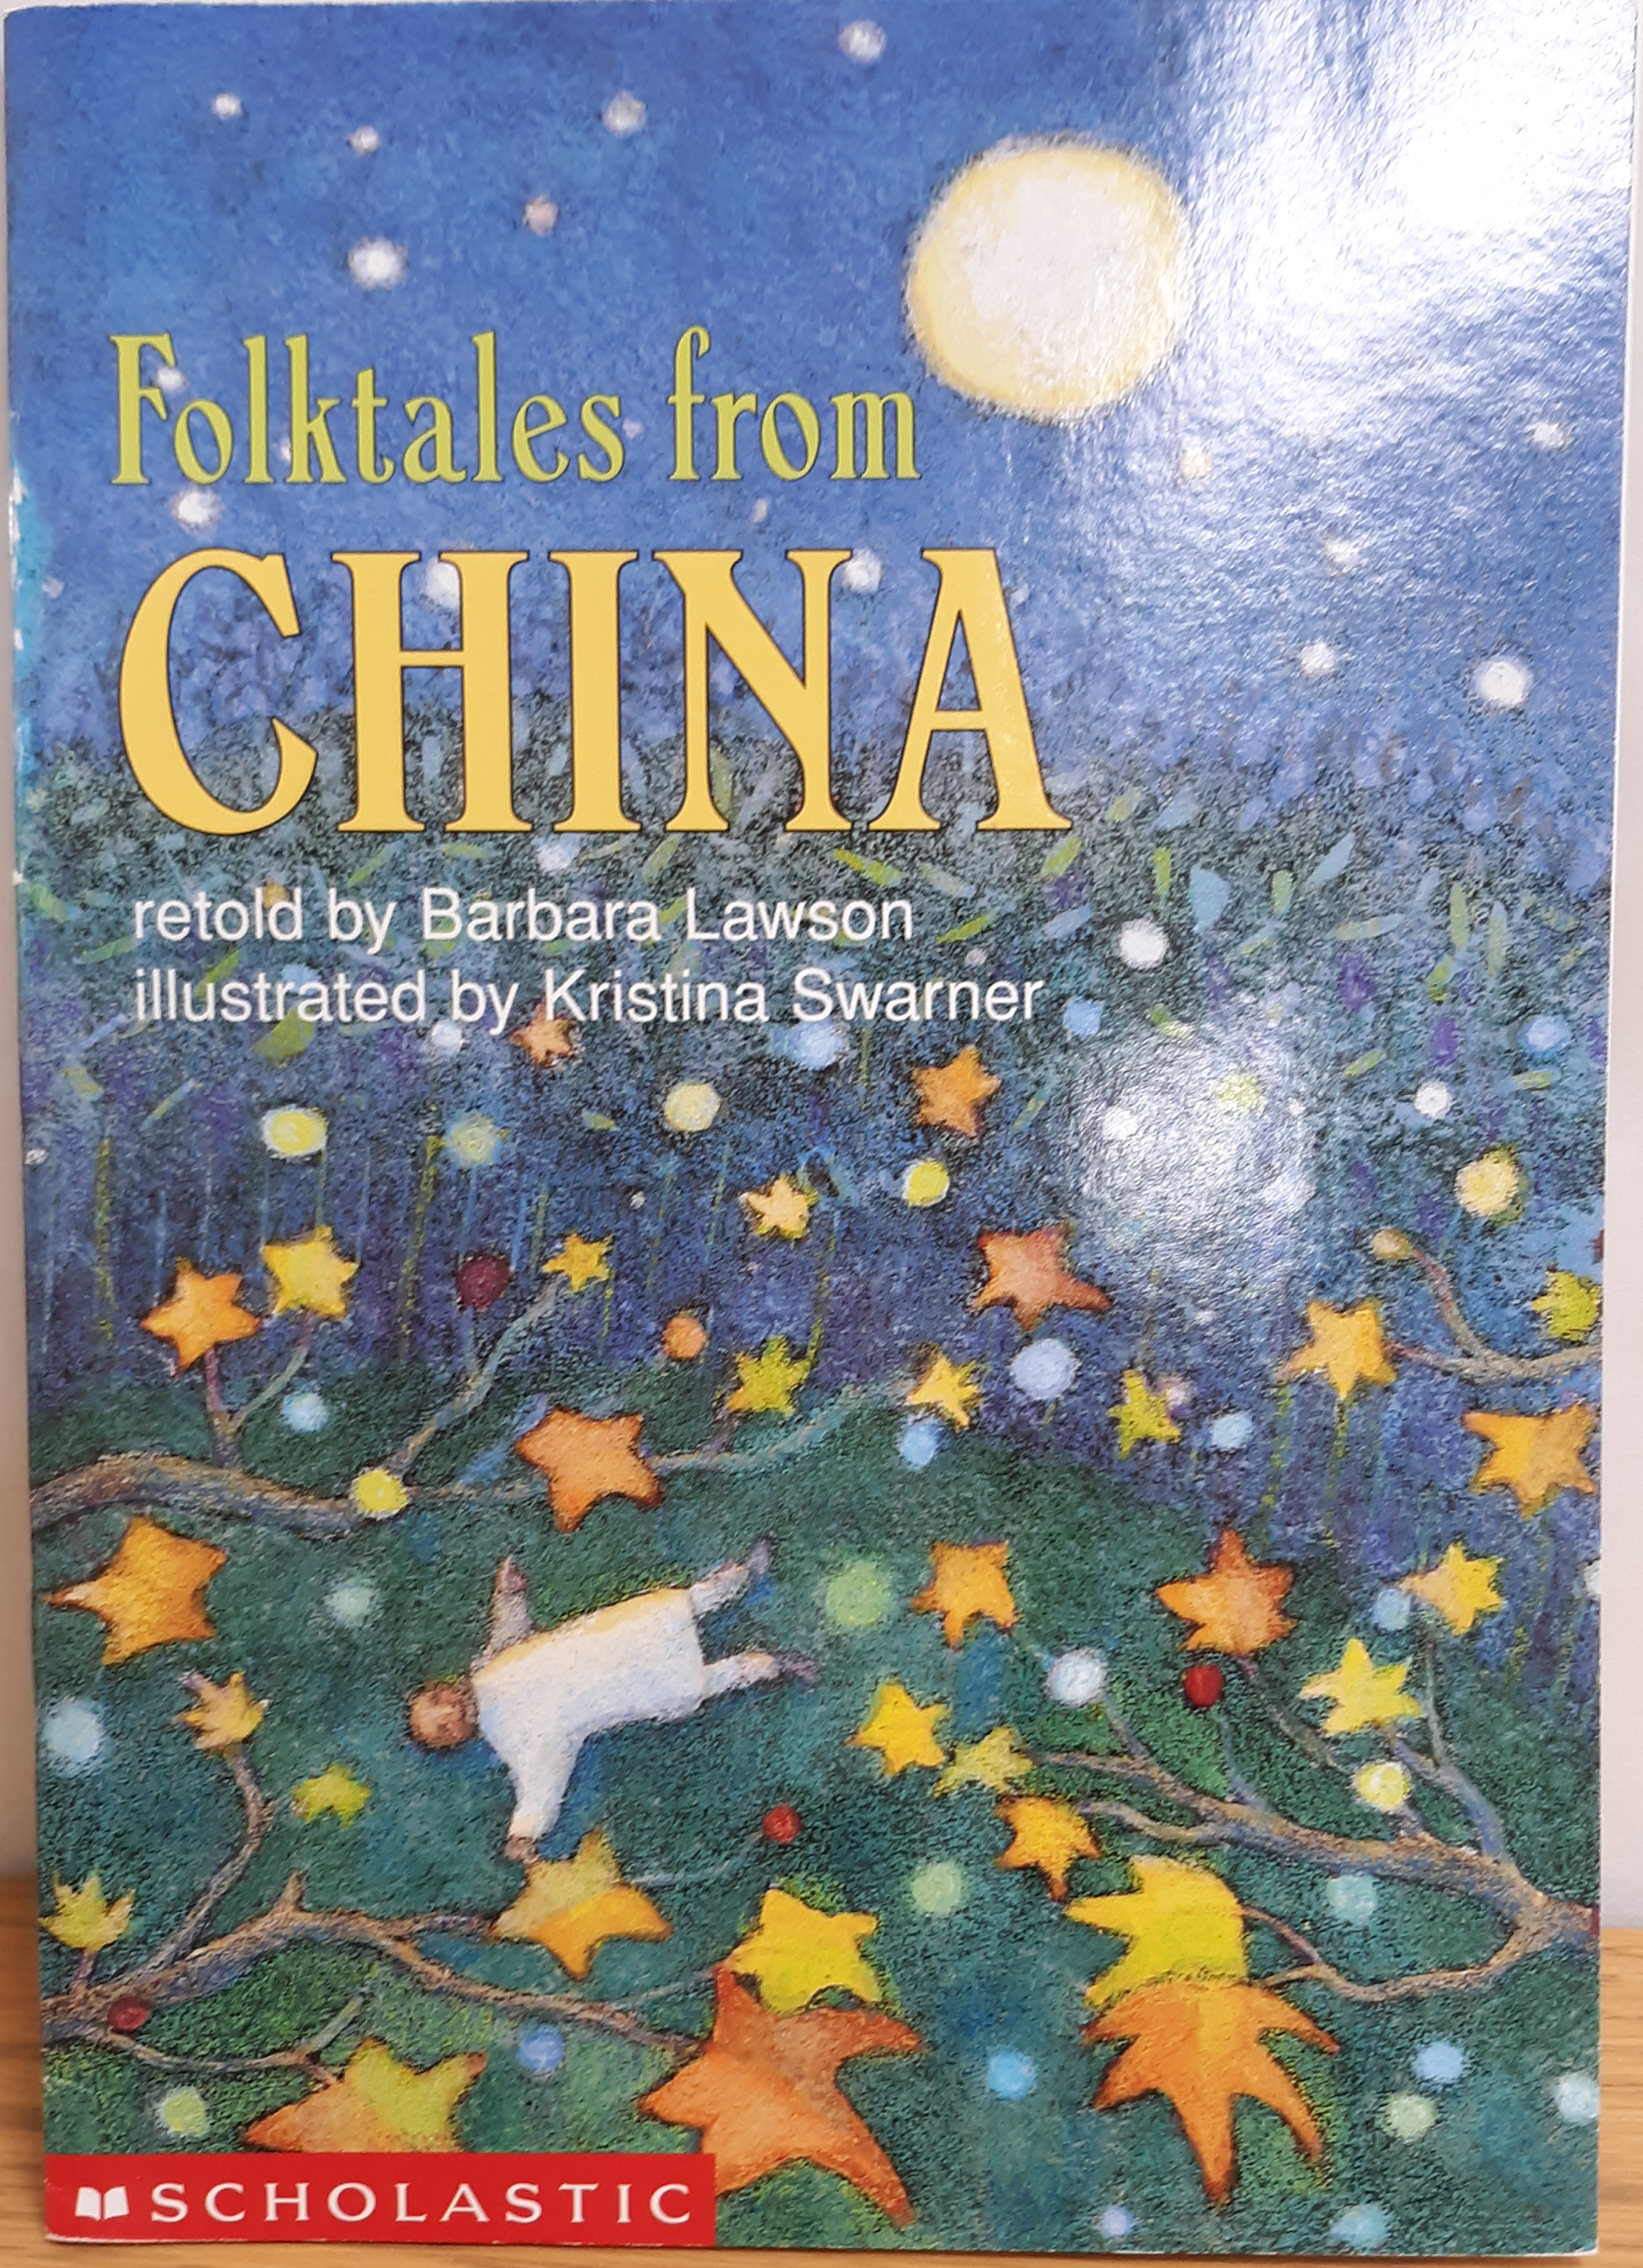 https://0201.nccdn.net/1_2/000/000/0f3/b51/folktales-from-china.png